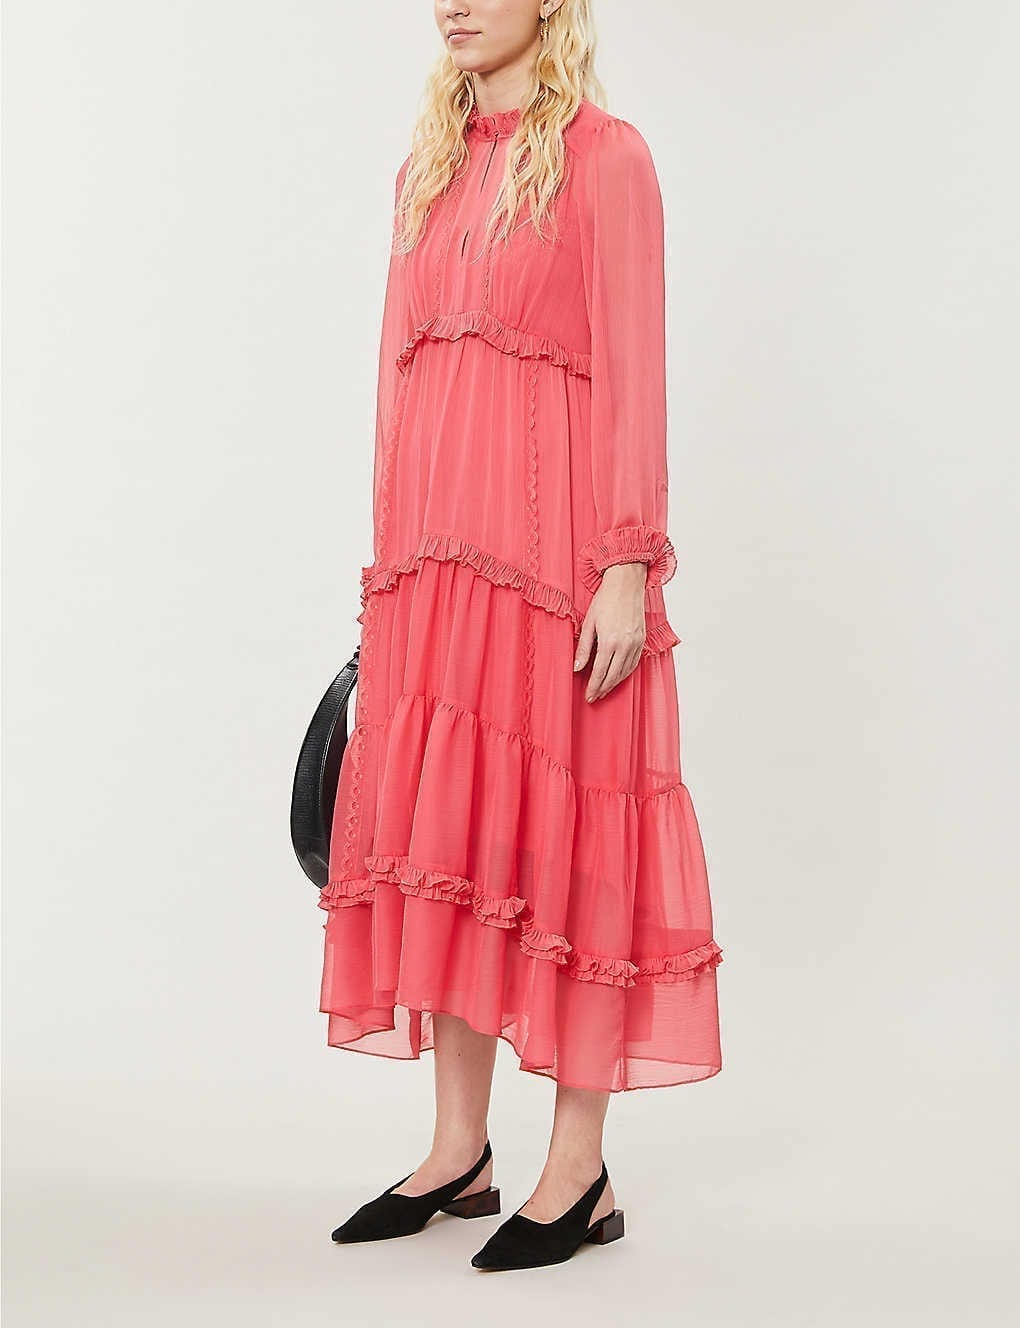 ME AND EM Ruffle Crepe Midi Dress